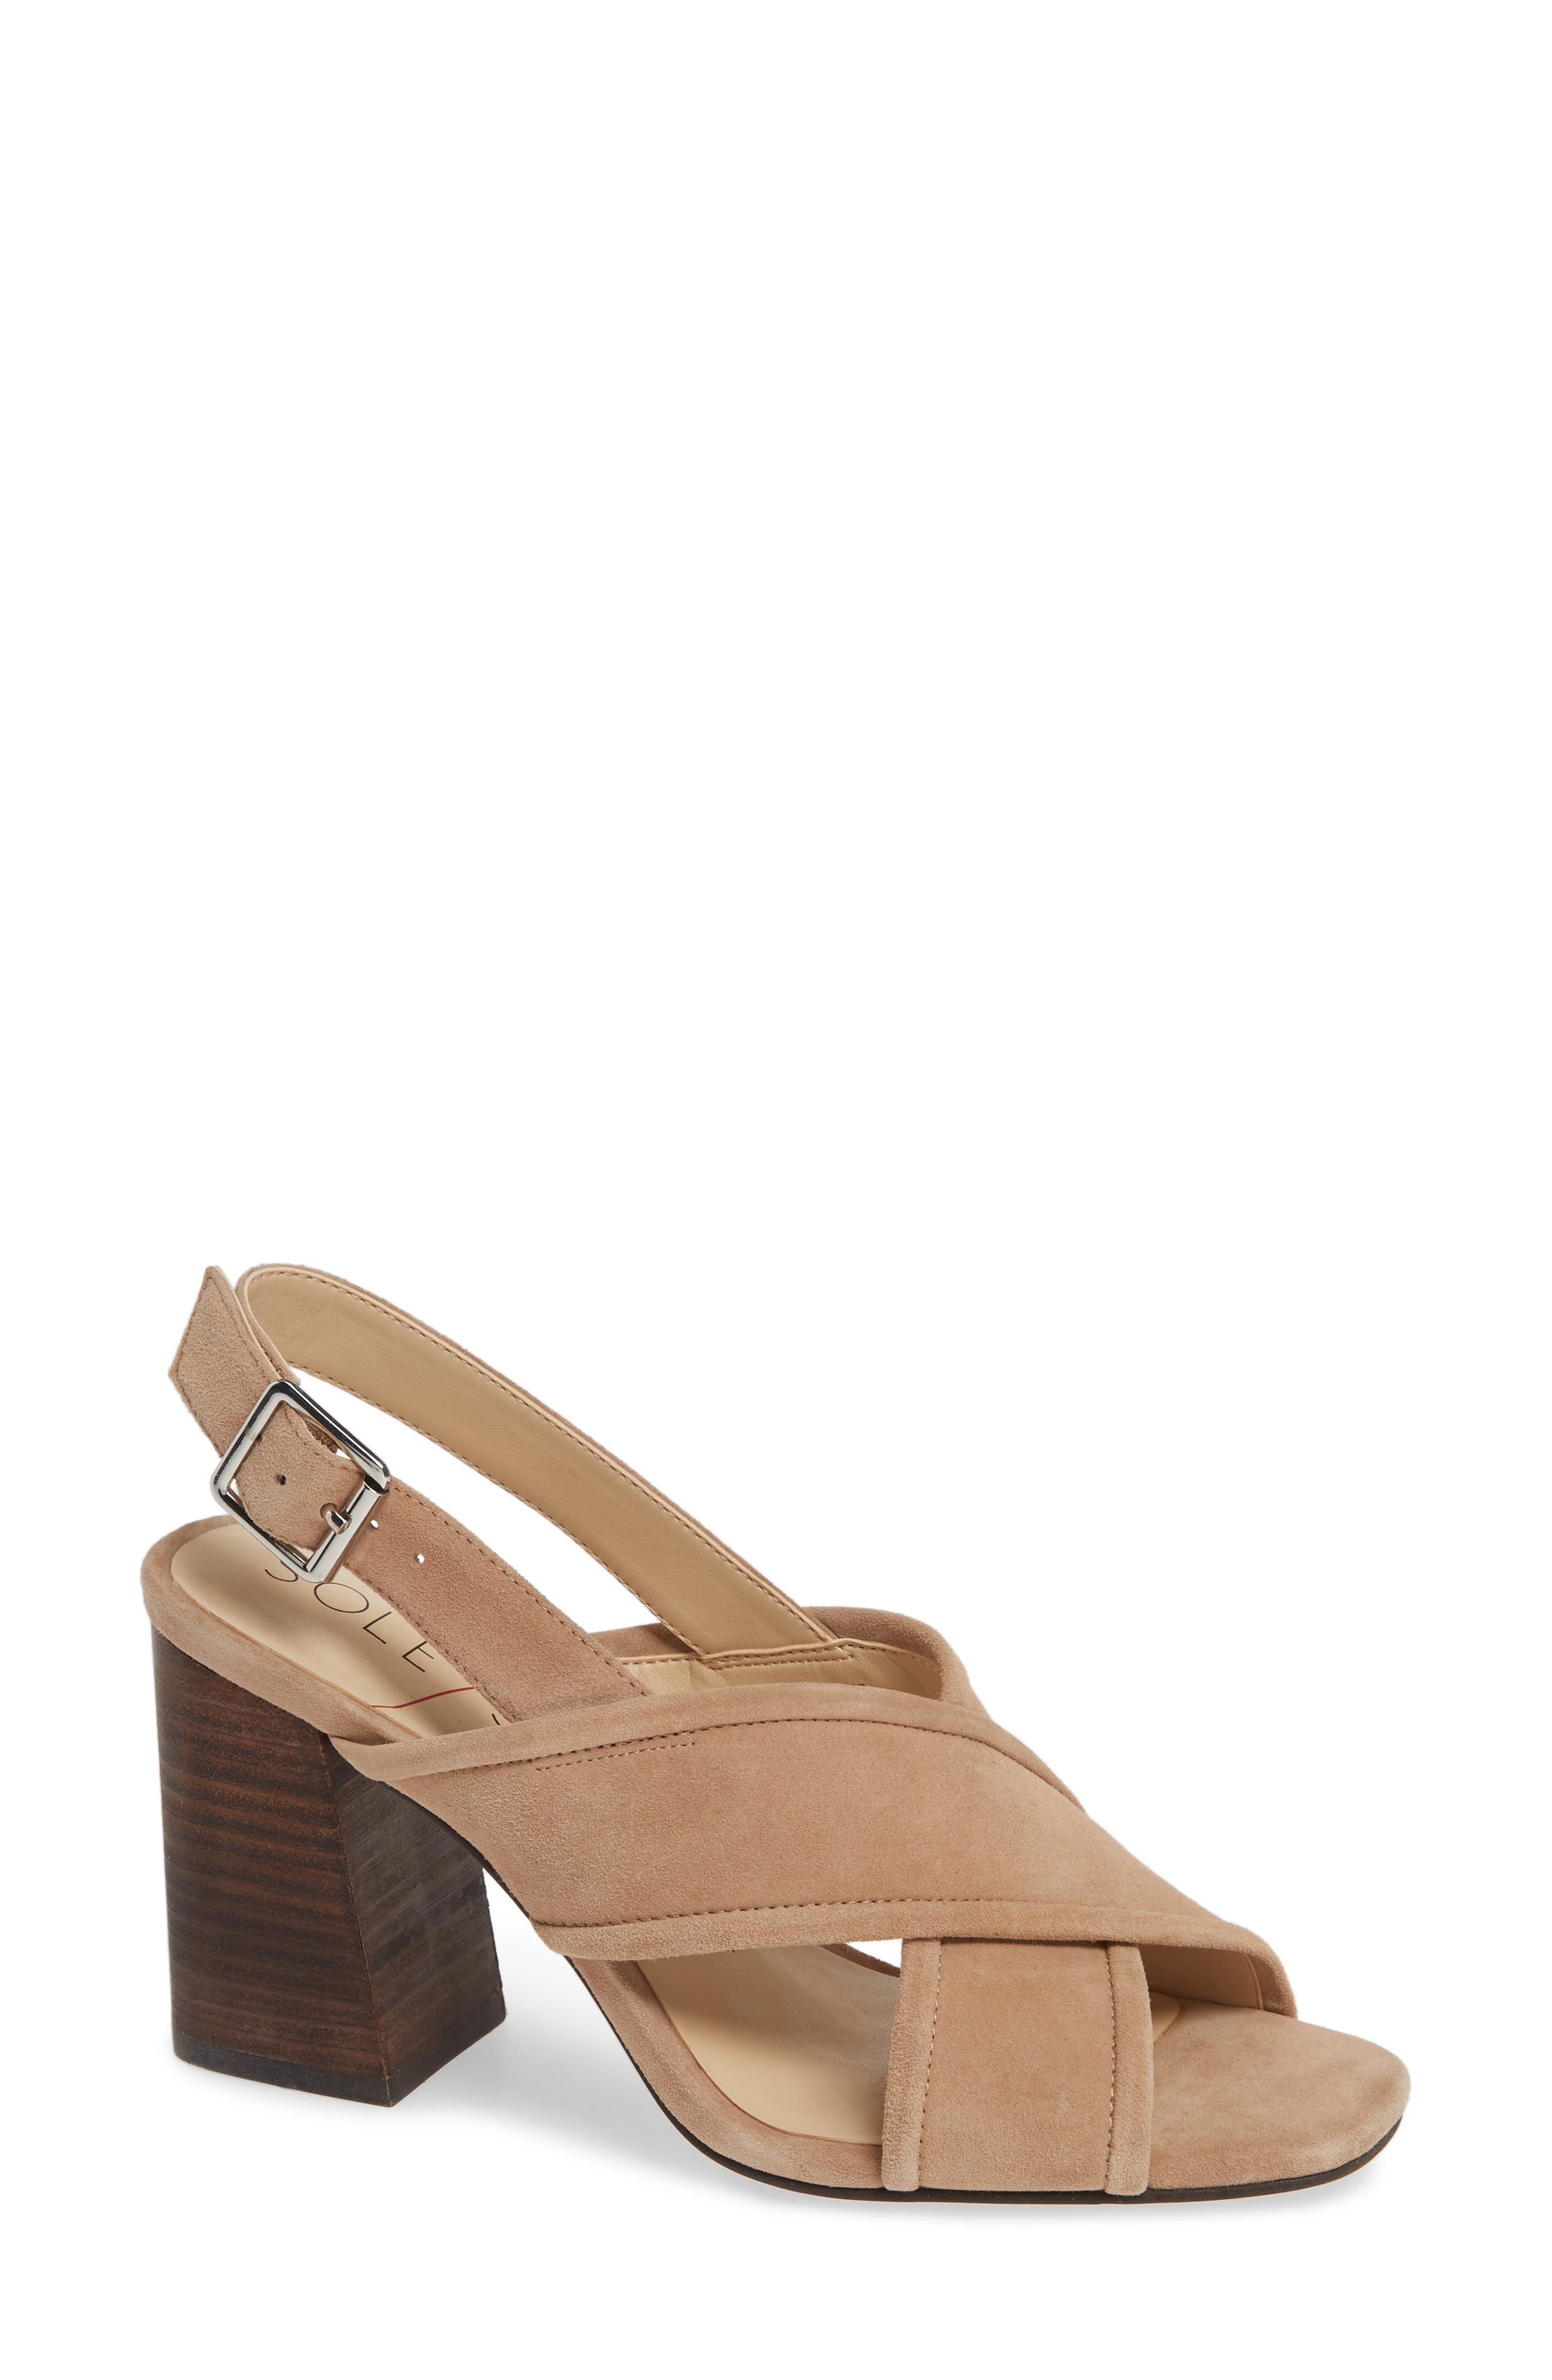 SOLE SOCIETY Joree Slingback Sandal, Main, color, DUSTED TAUPE SUEDE